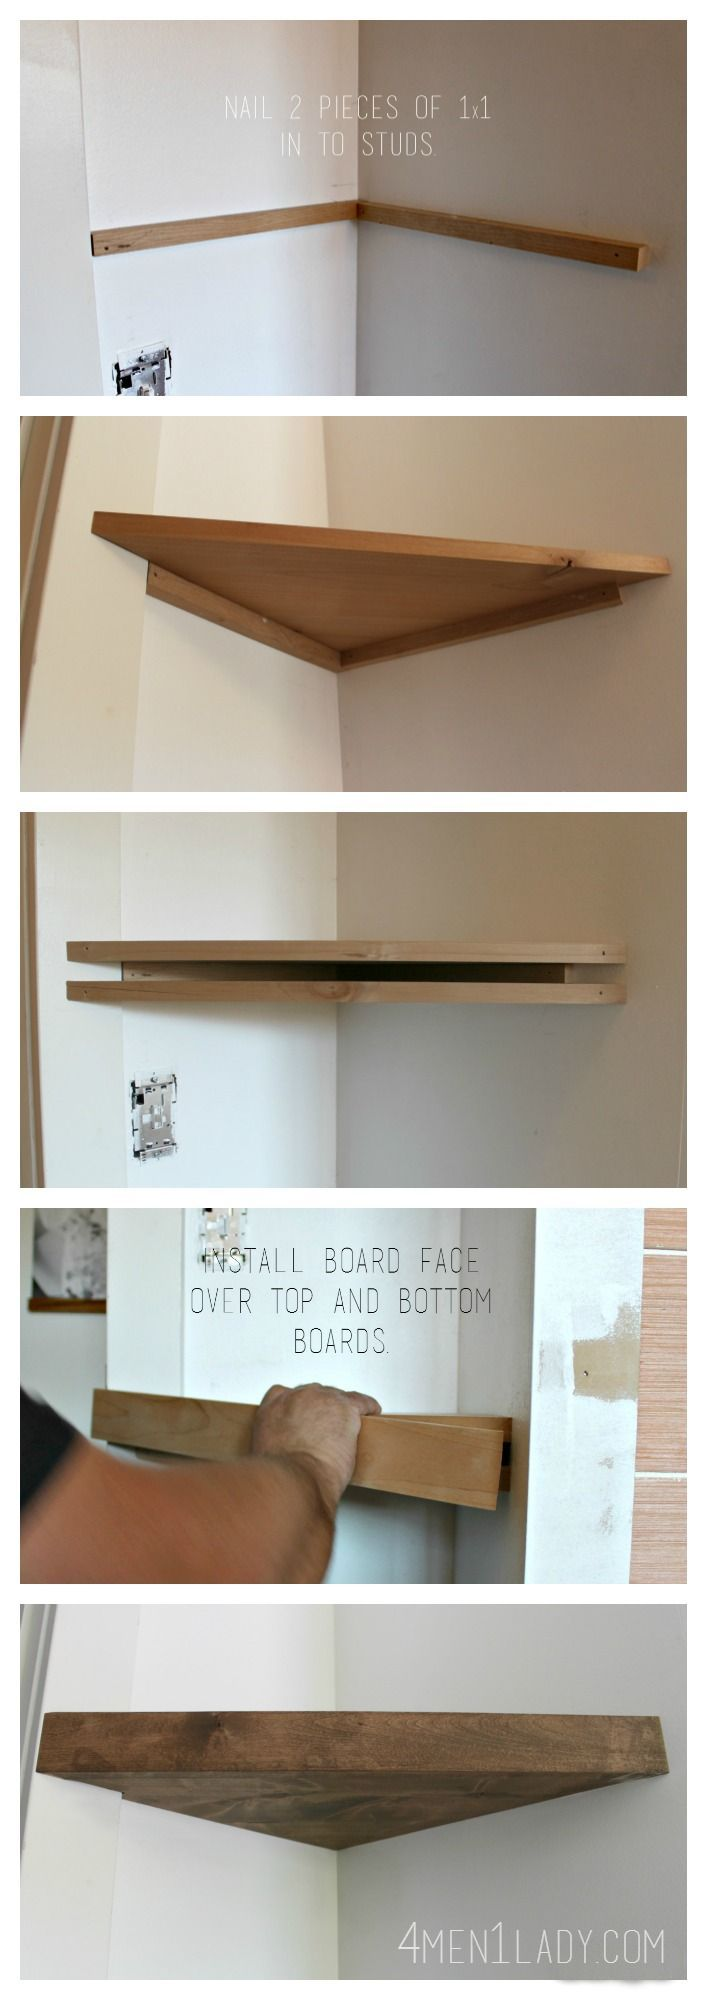 How to make corner floating shelves. 4men1lady.com Office DIY Decor, Office Decor, Office Ideas #DIY